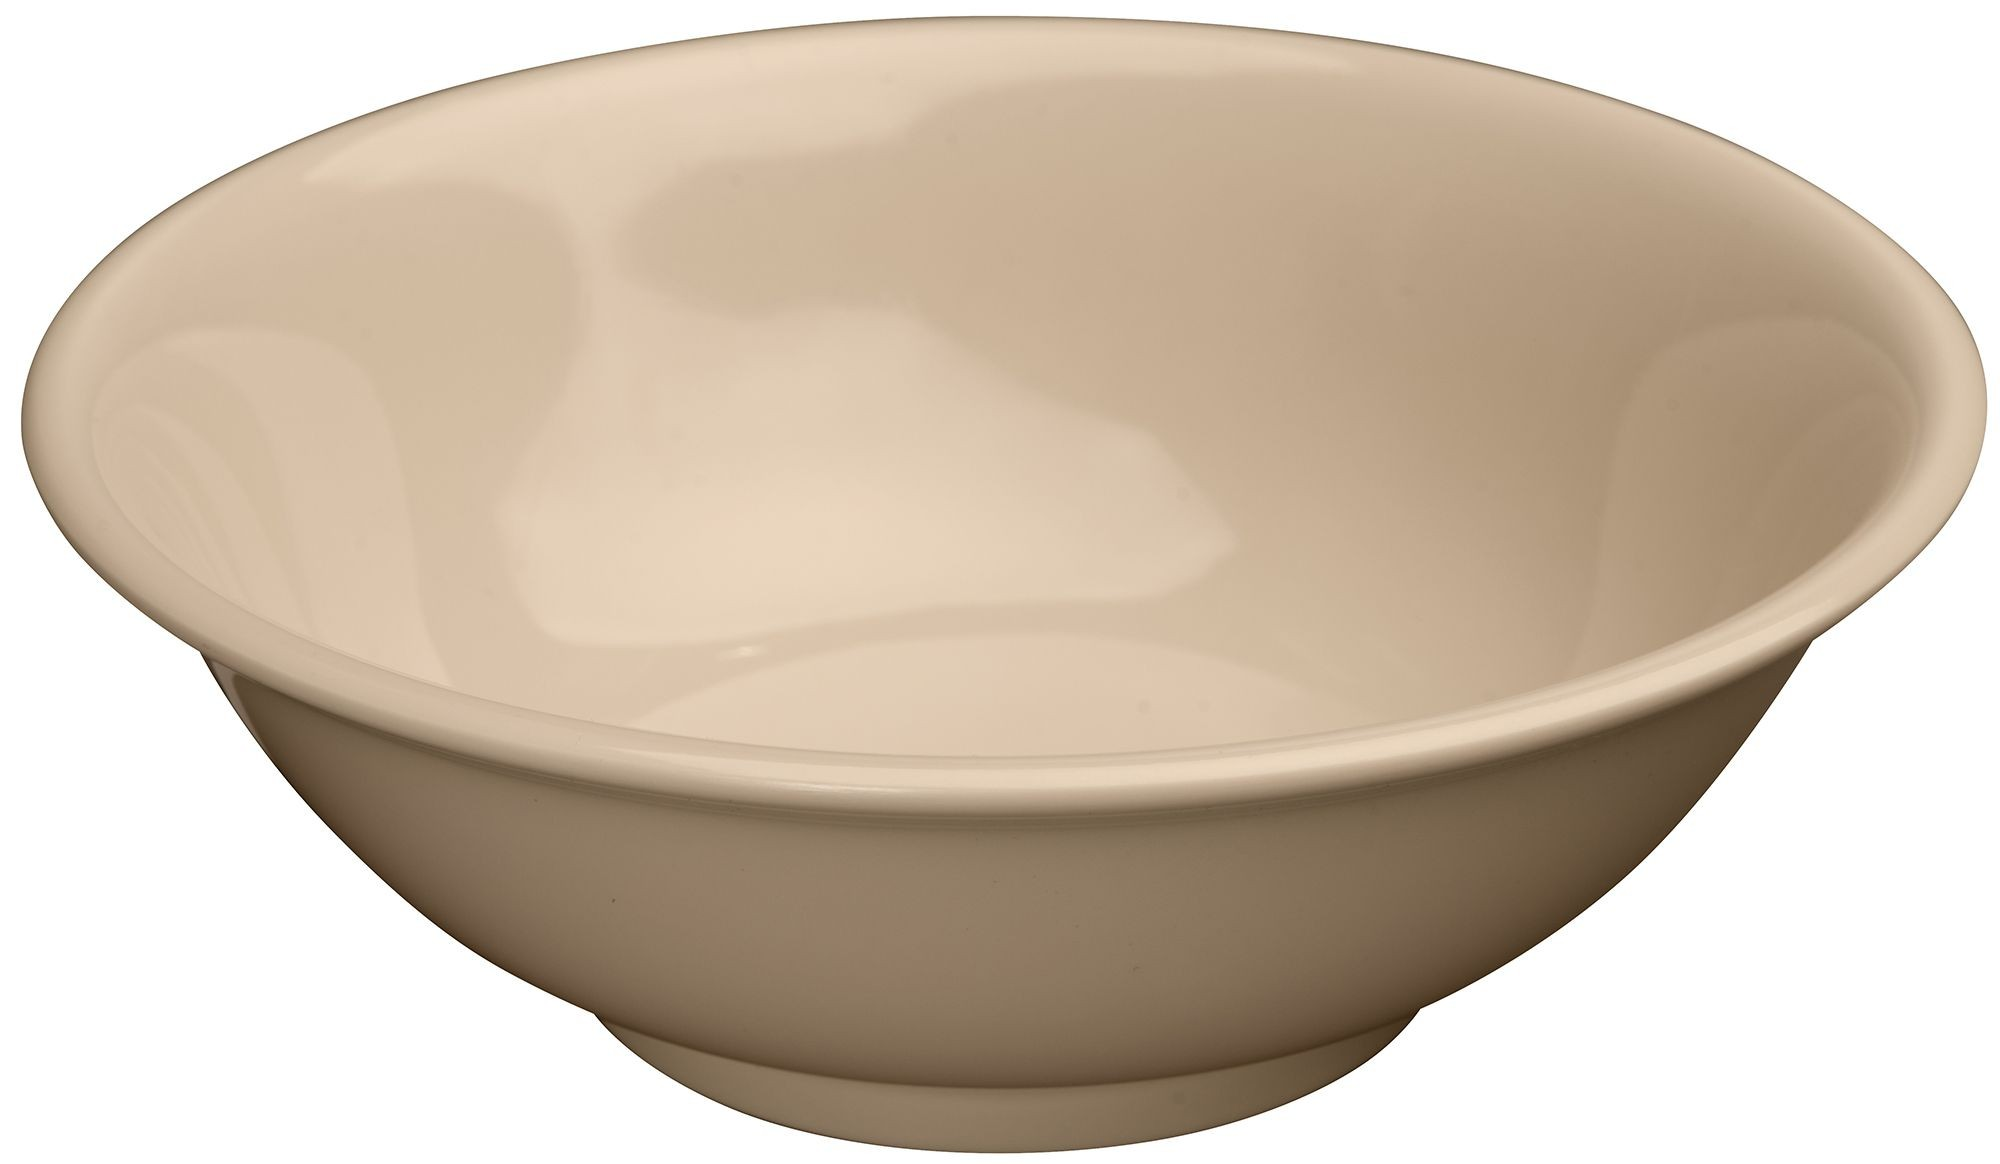 Winco MMB-41 Tan Melamine Rimless Bowl 41 oz.